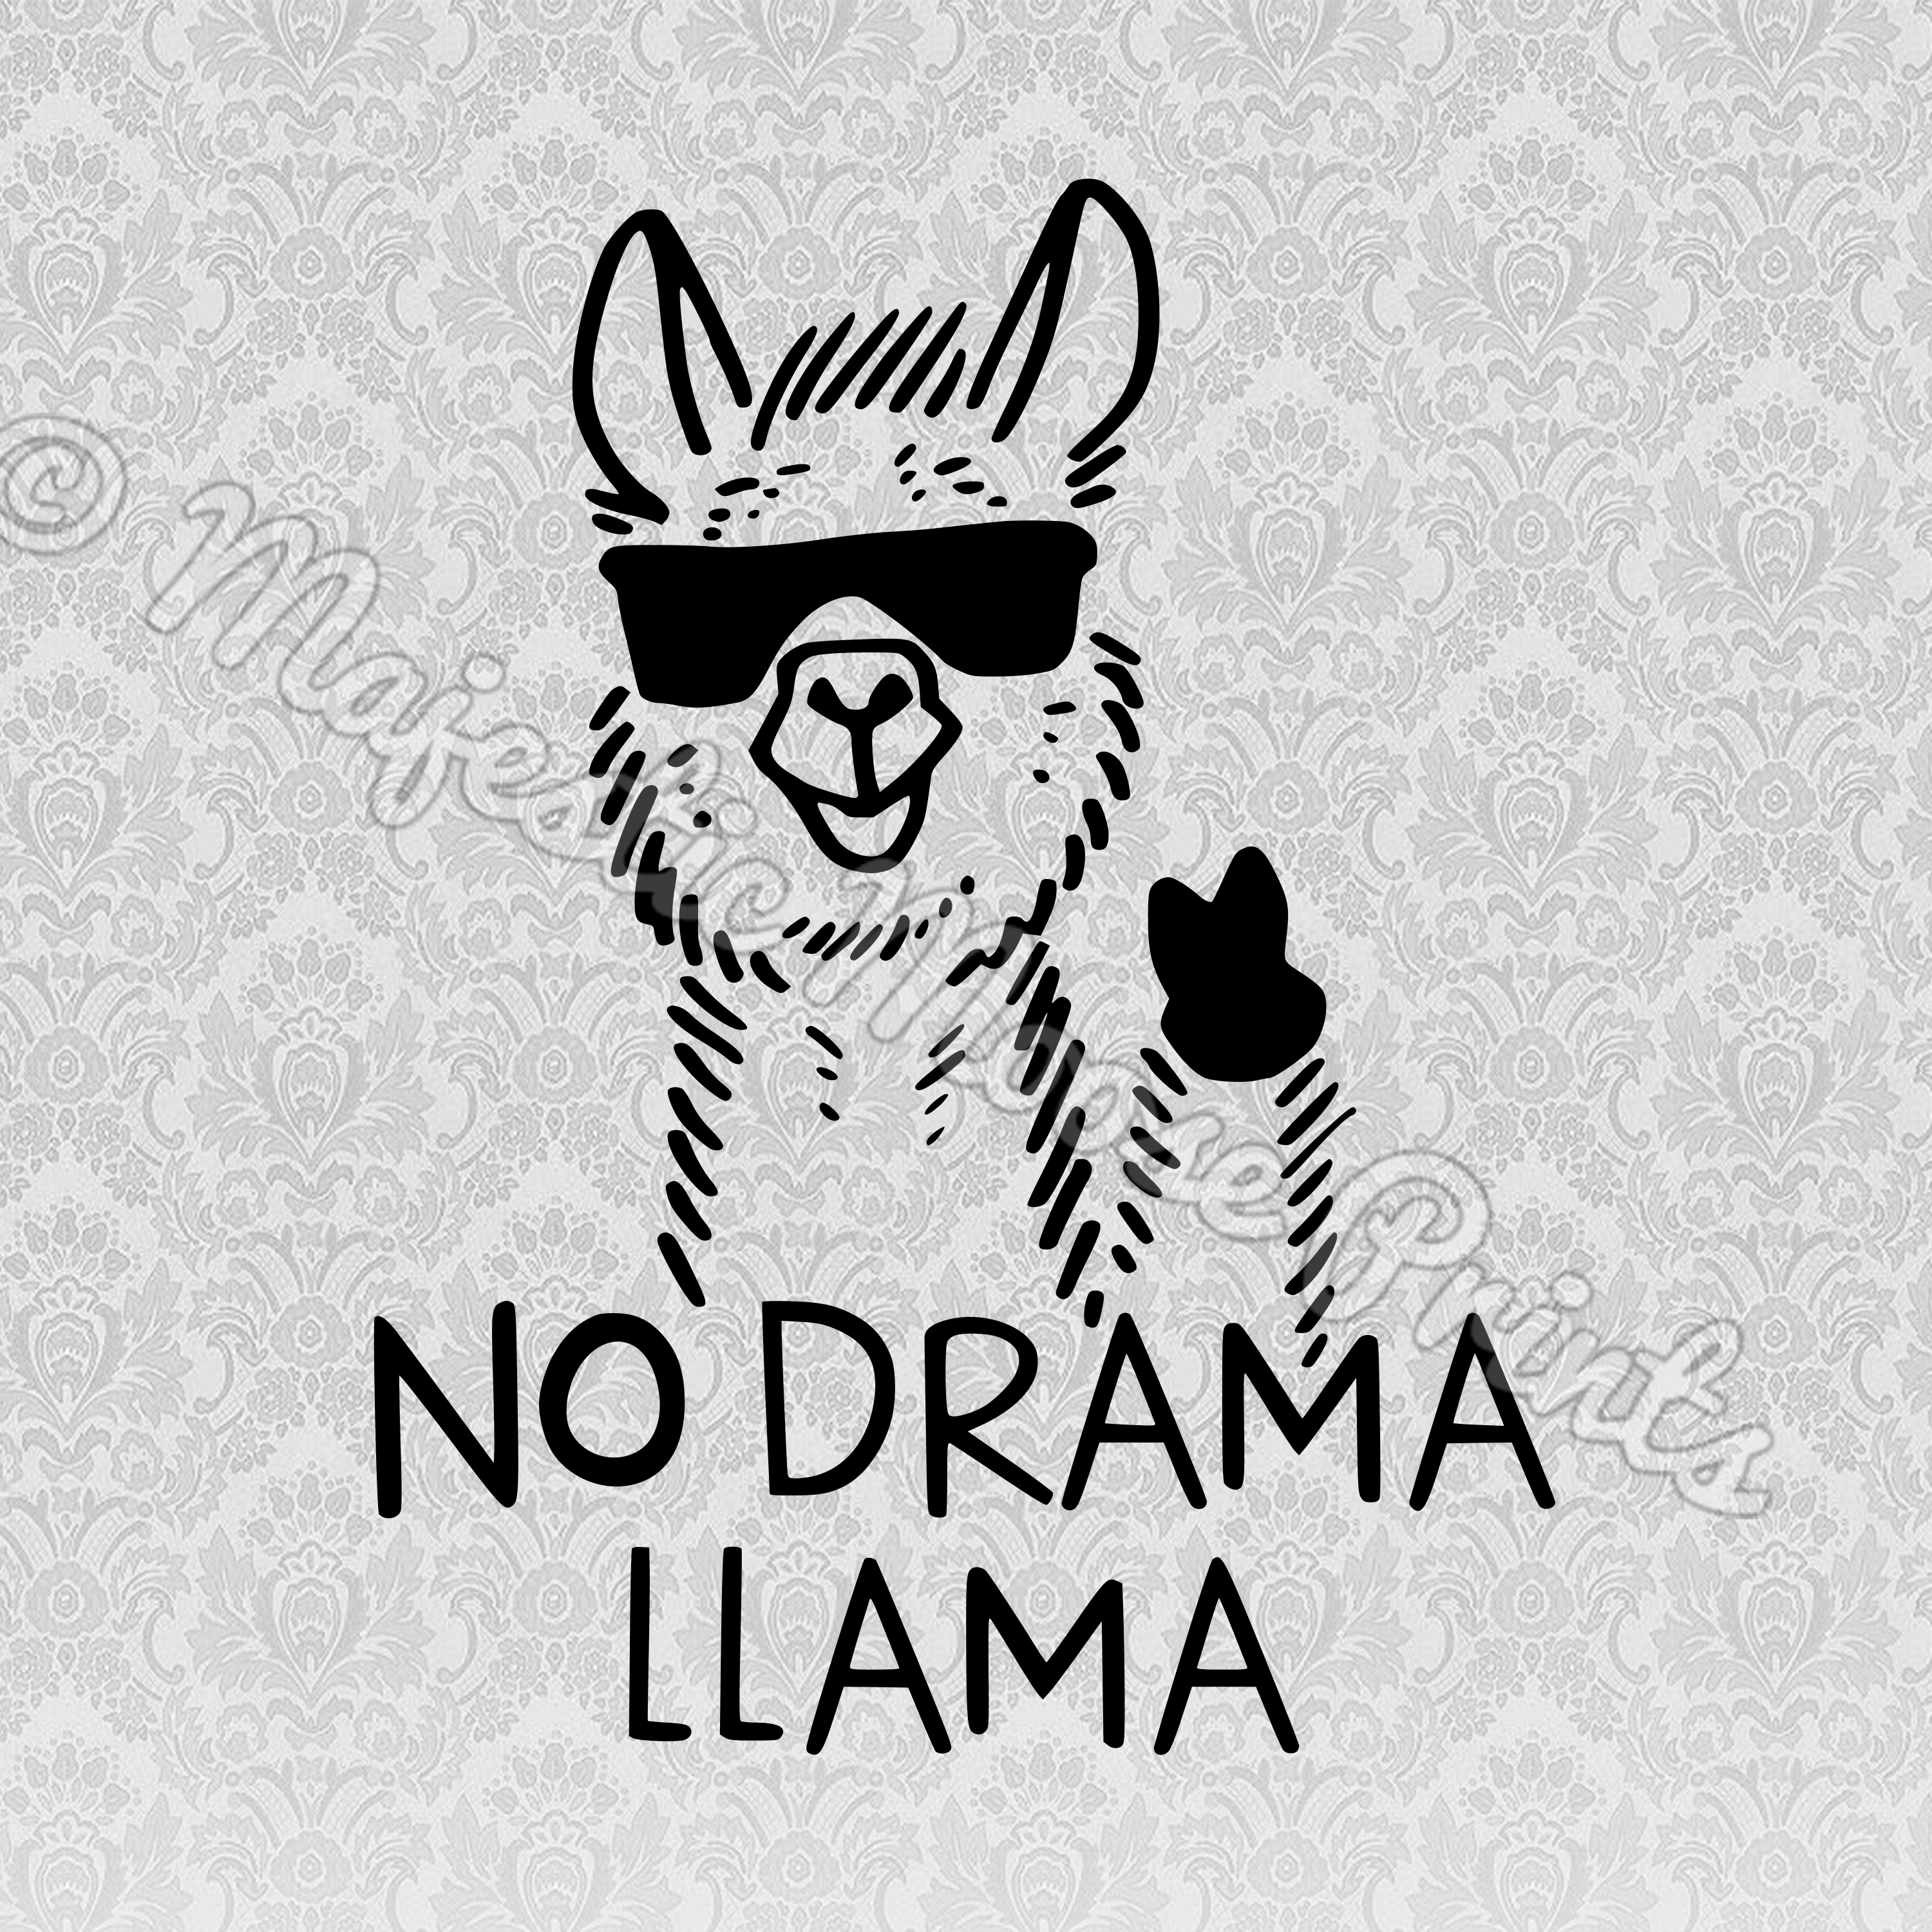 Star clipart black and white drama vector transparent download Majestic Moose Prints - No Drama Llama SVG / Clipart / Cut File vector transparent download